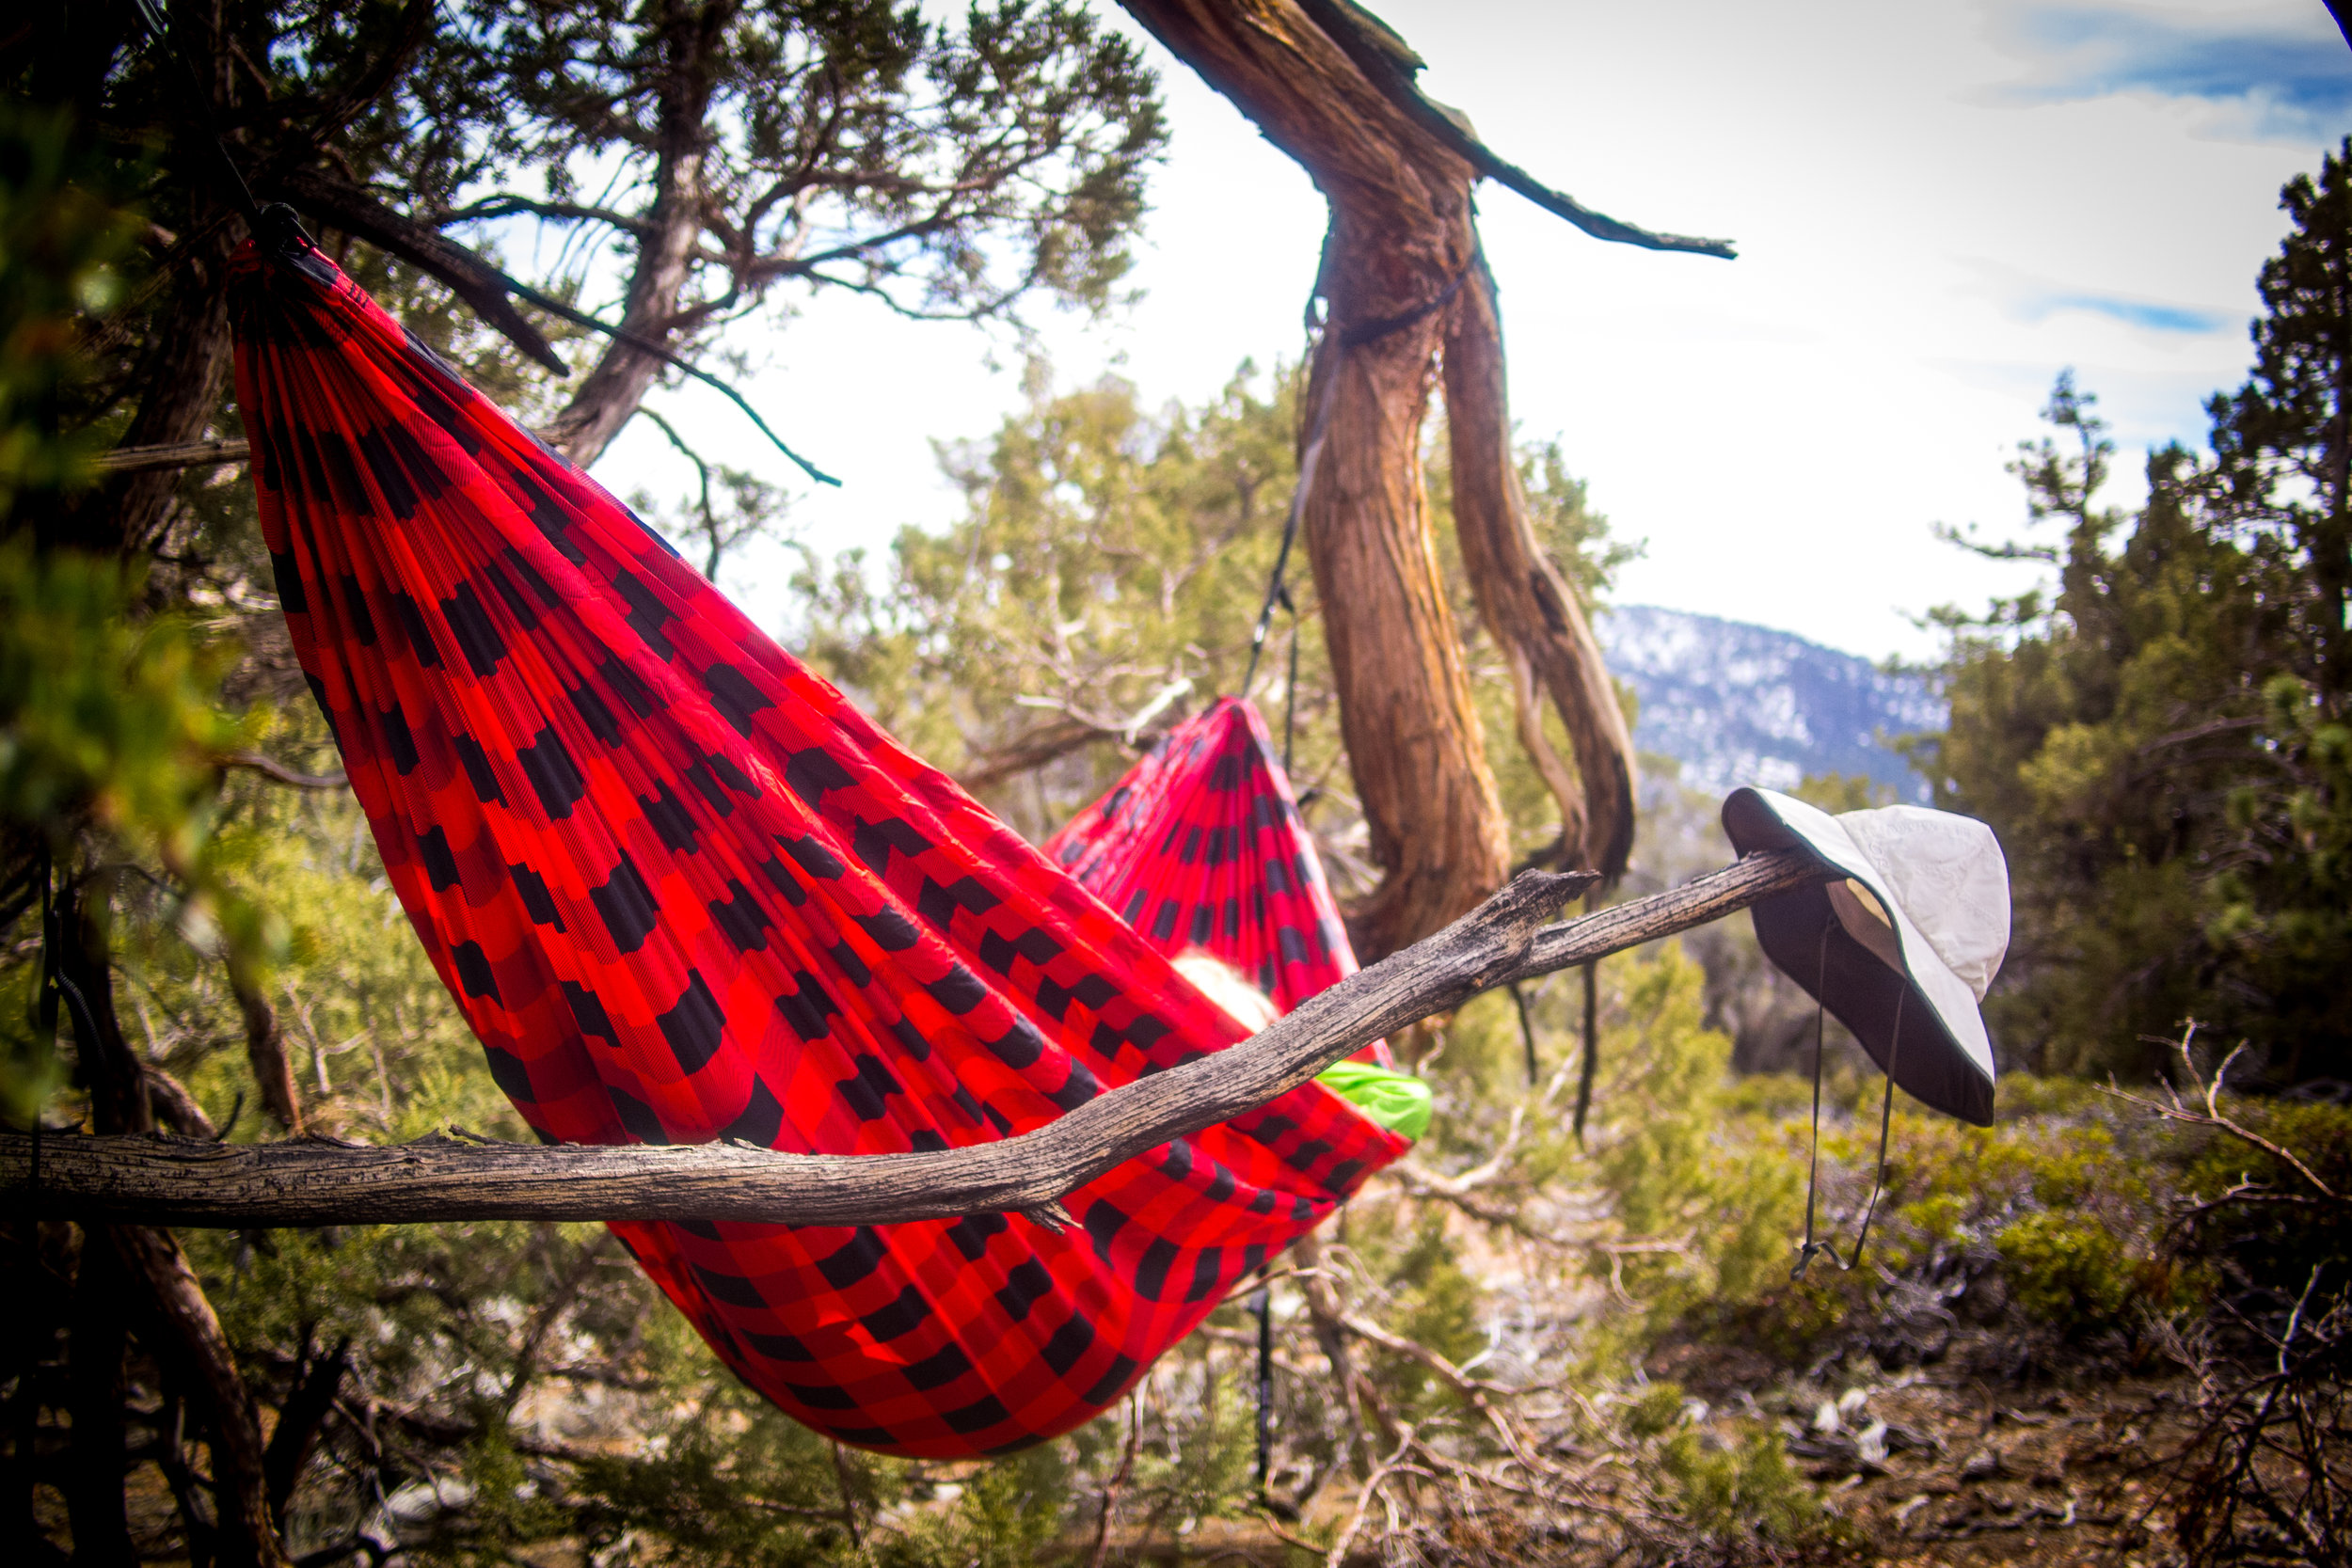 straps bag interior a depot use castaway to travel hammocks hammock stand instructions how in home